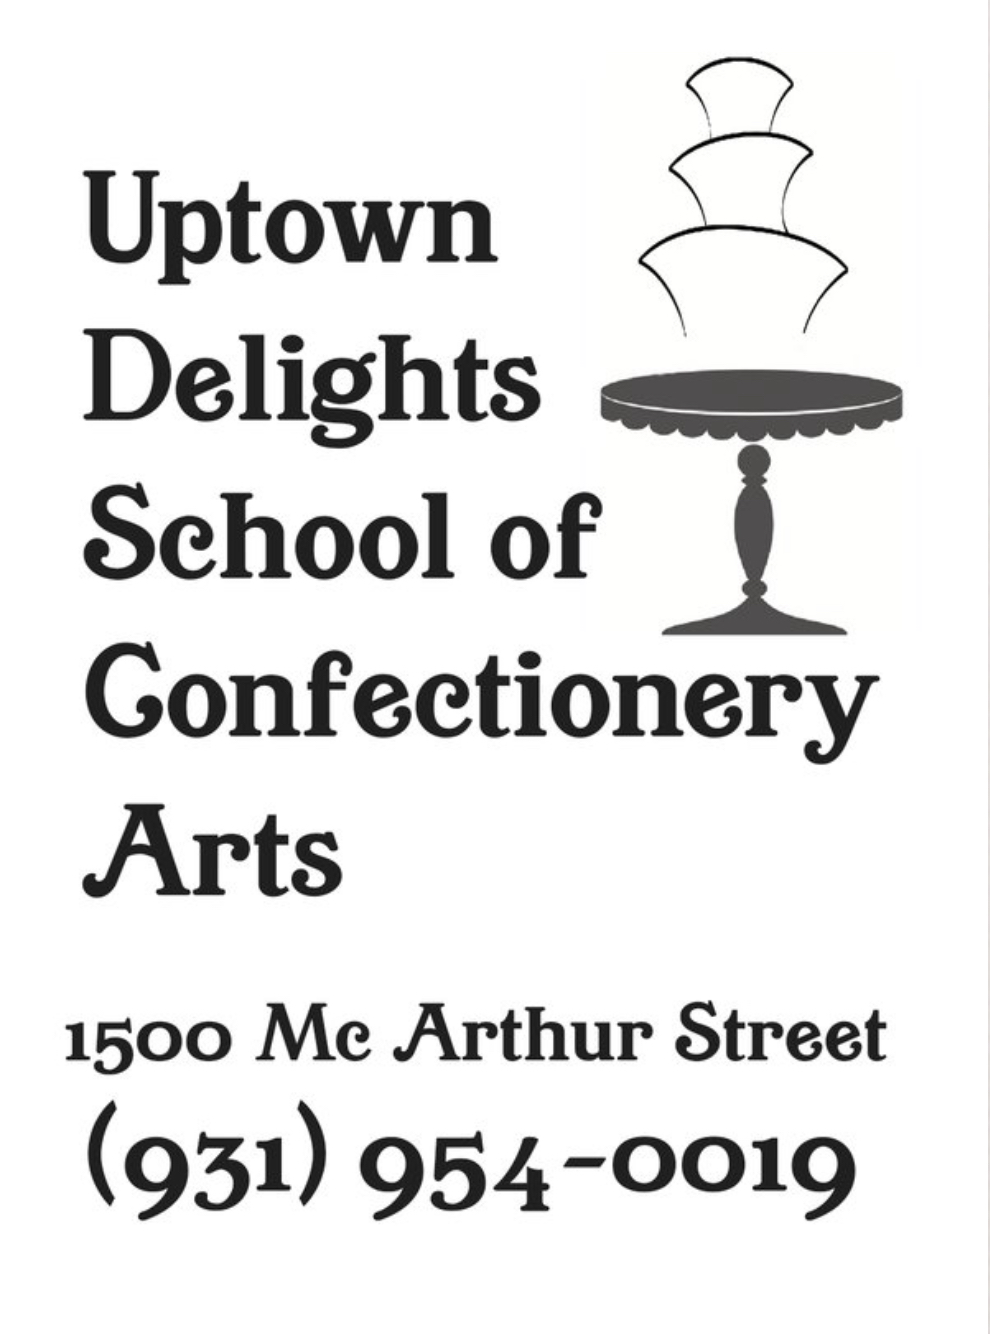 Uptown Delights School of Confectionery Arts, LLC